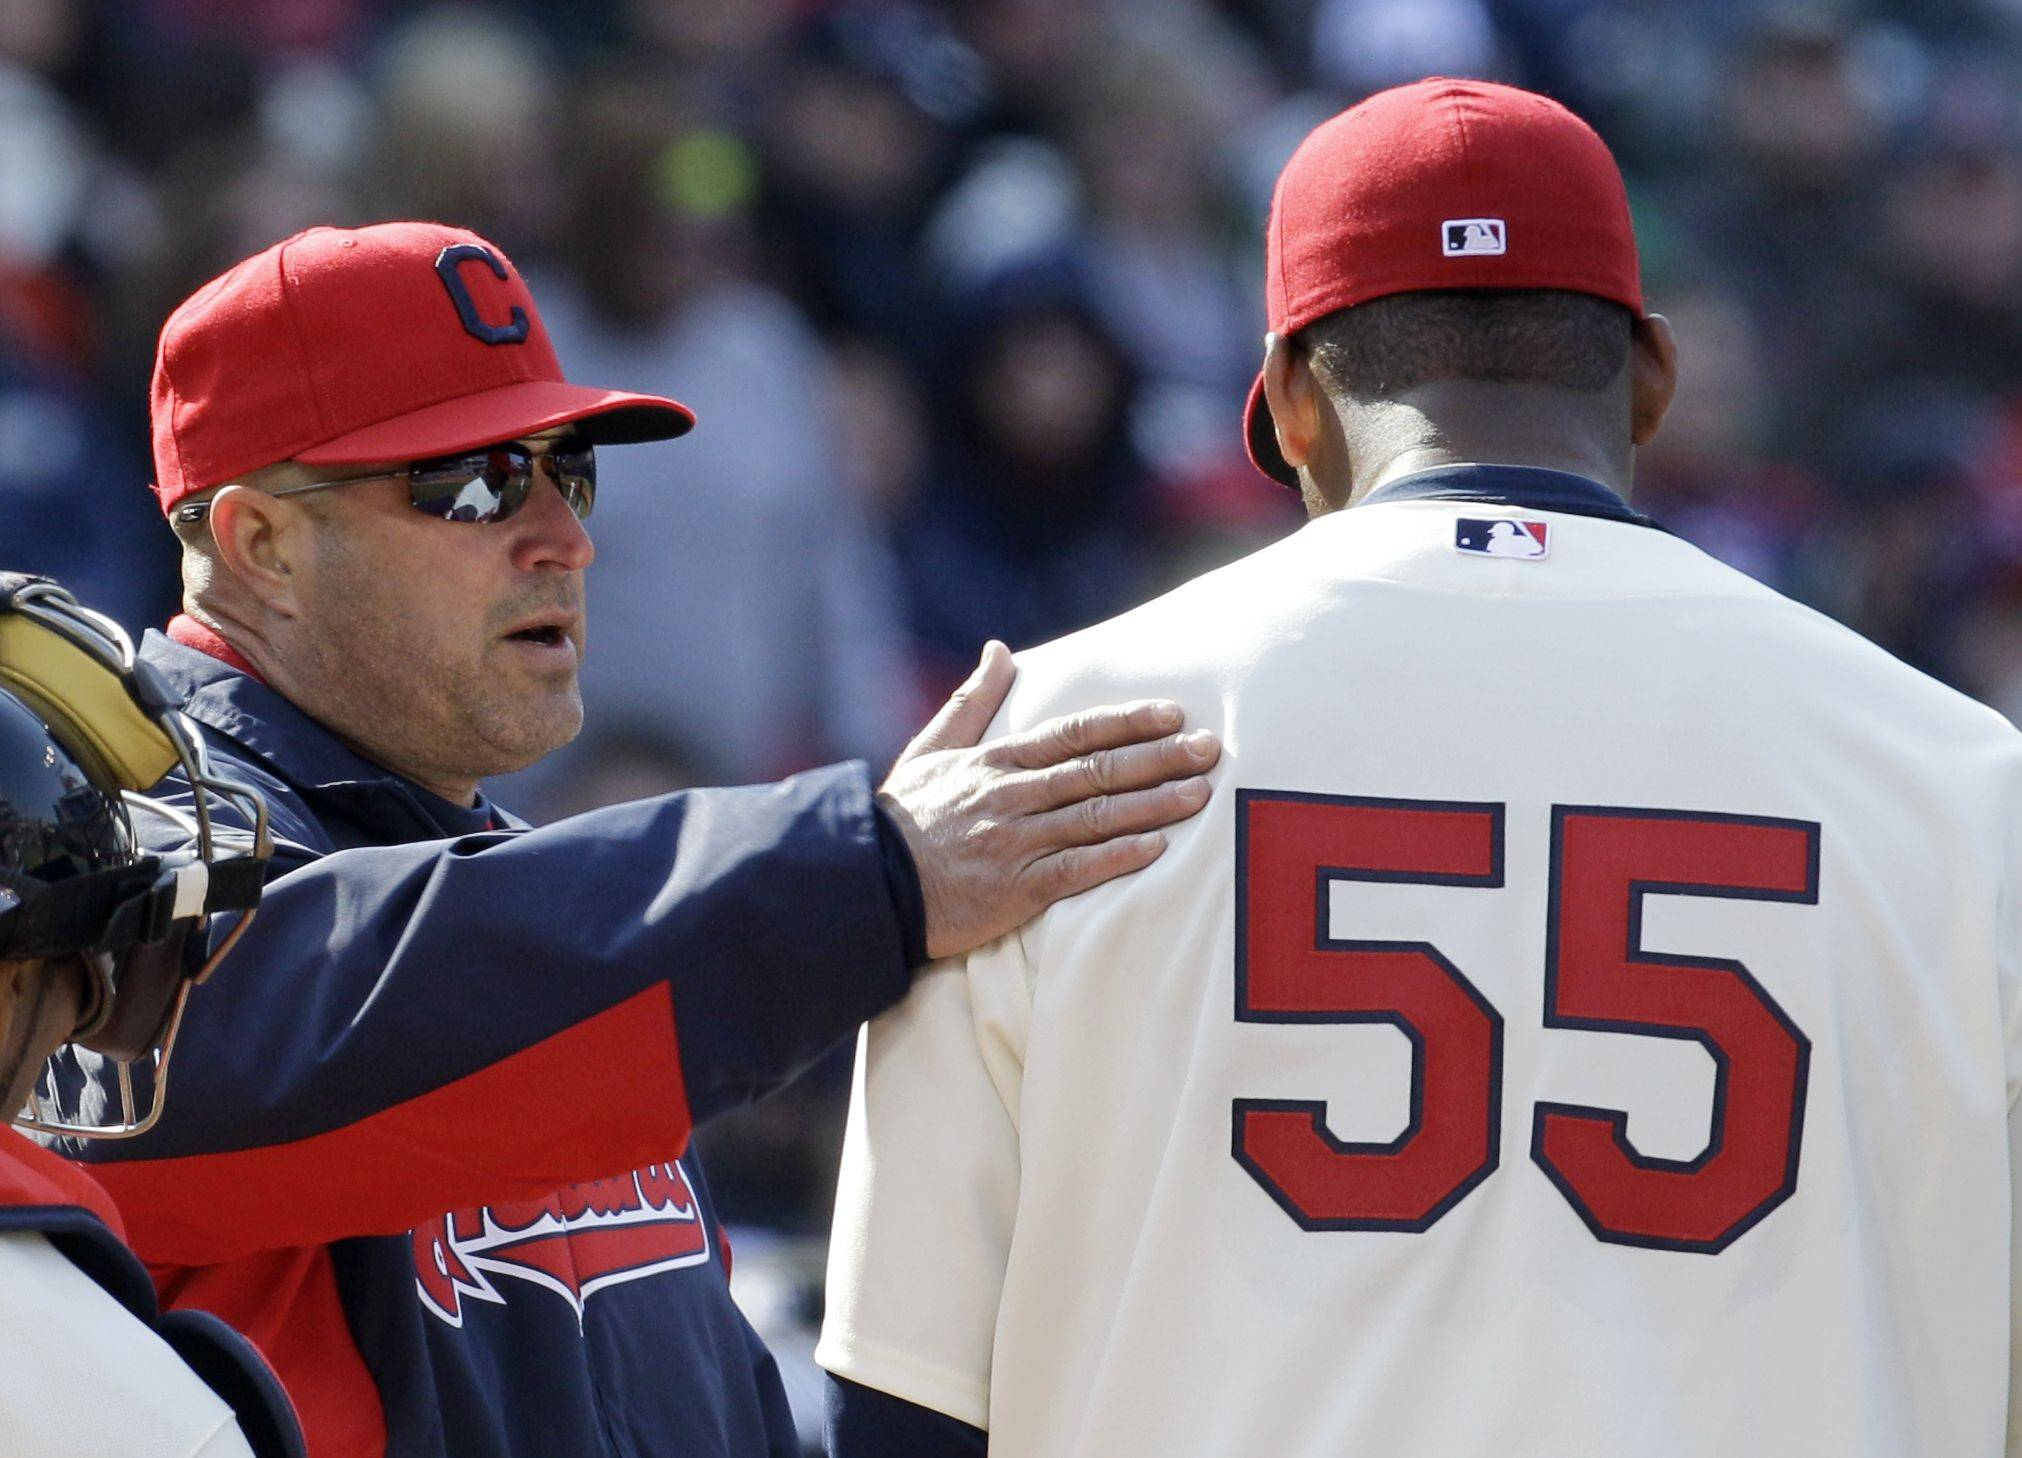 Cleveland Indians manager Manny Acta, left, pats Indians starting pitcher Fausto Carmona on the shoulder in the fourth inning in an opening day baseball game against the Chicago White Sox, Friday, April 1, 2011, in Cleveland. Carmona left the game in the fourth inning.